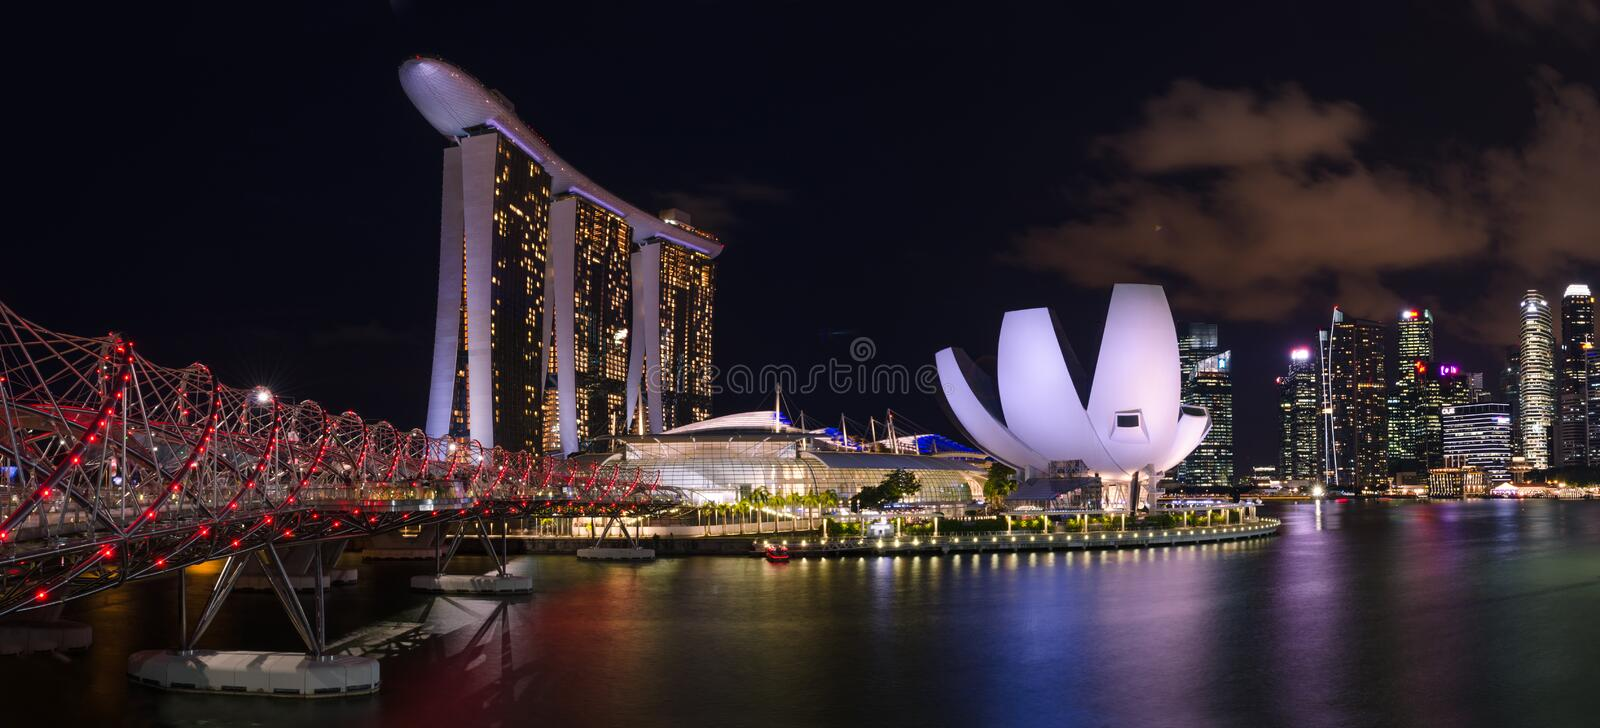 panorama da noite do hotel e do Art Science Museum de Marina Bay Sands em Singapura foto de stock